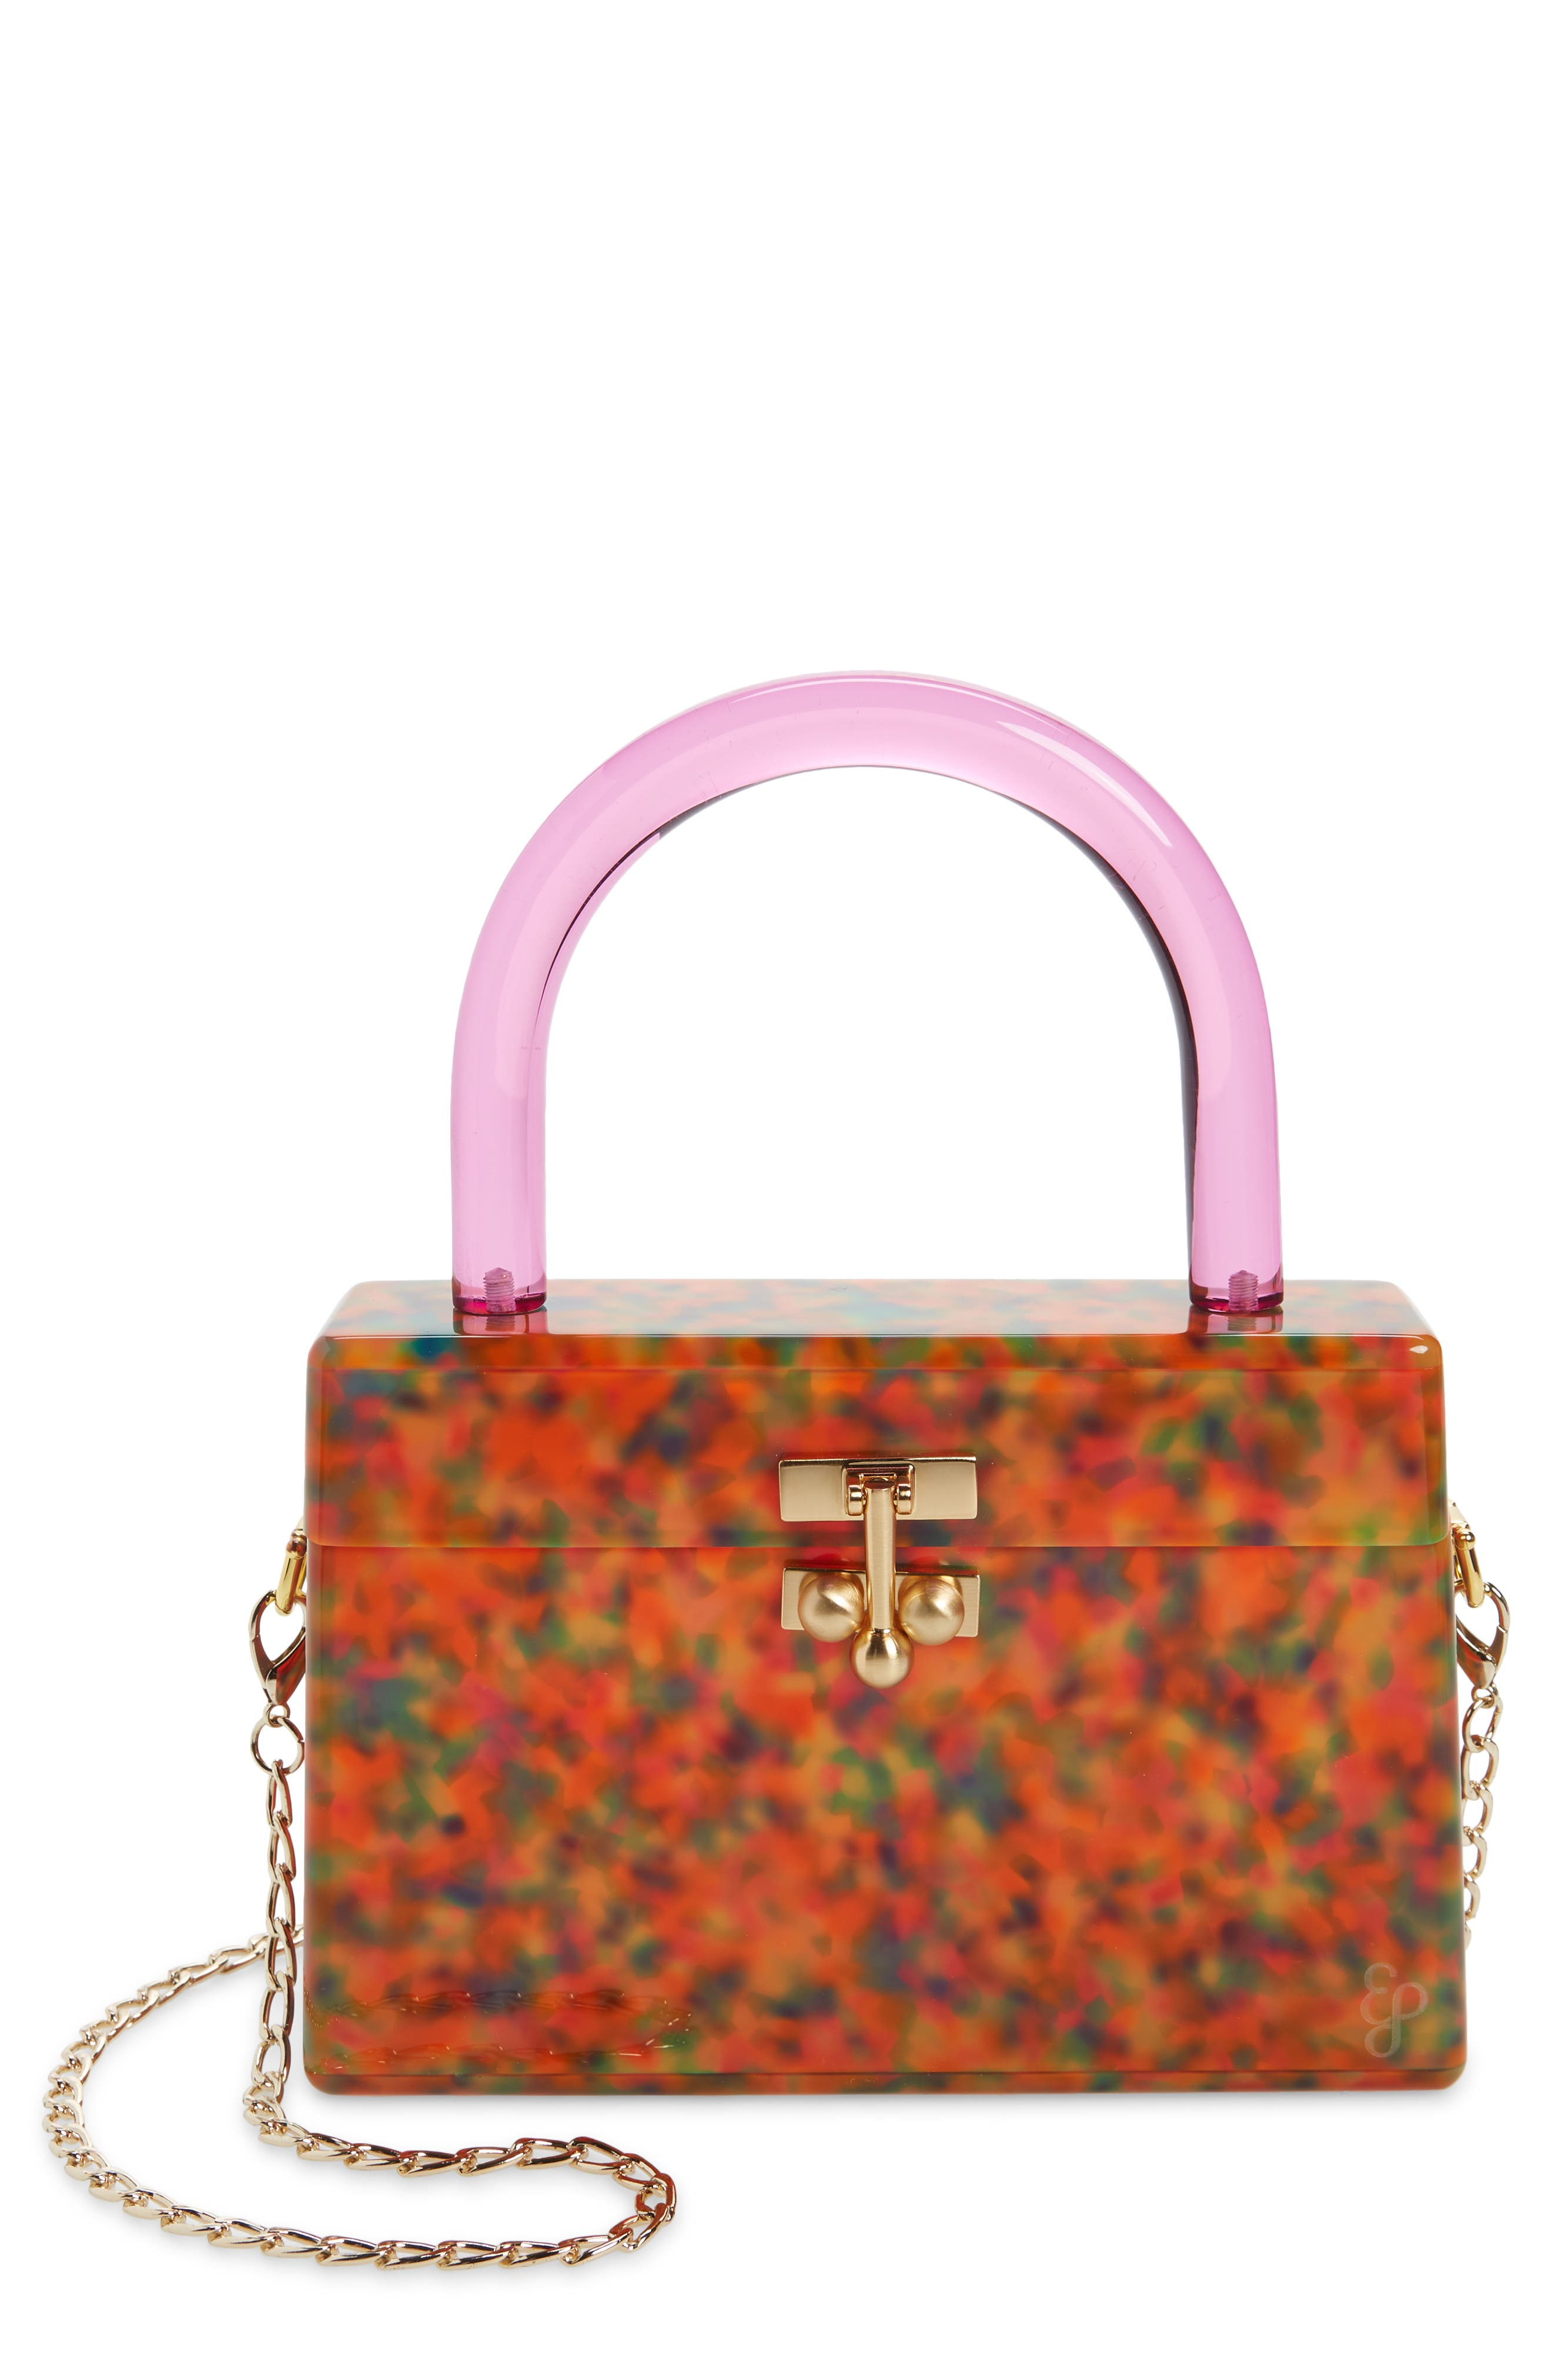 Edie Parker Miss Mini Acrylic Box Bag in Party Tortoise at Nordstrom